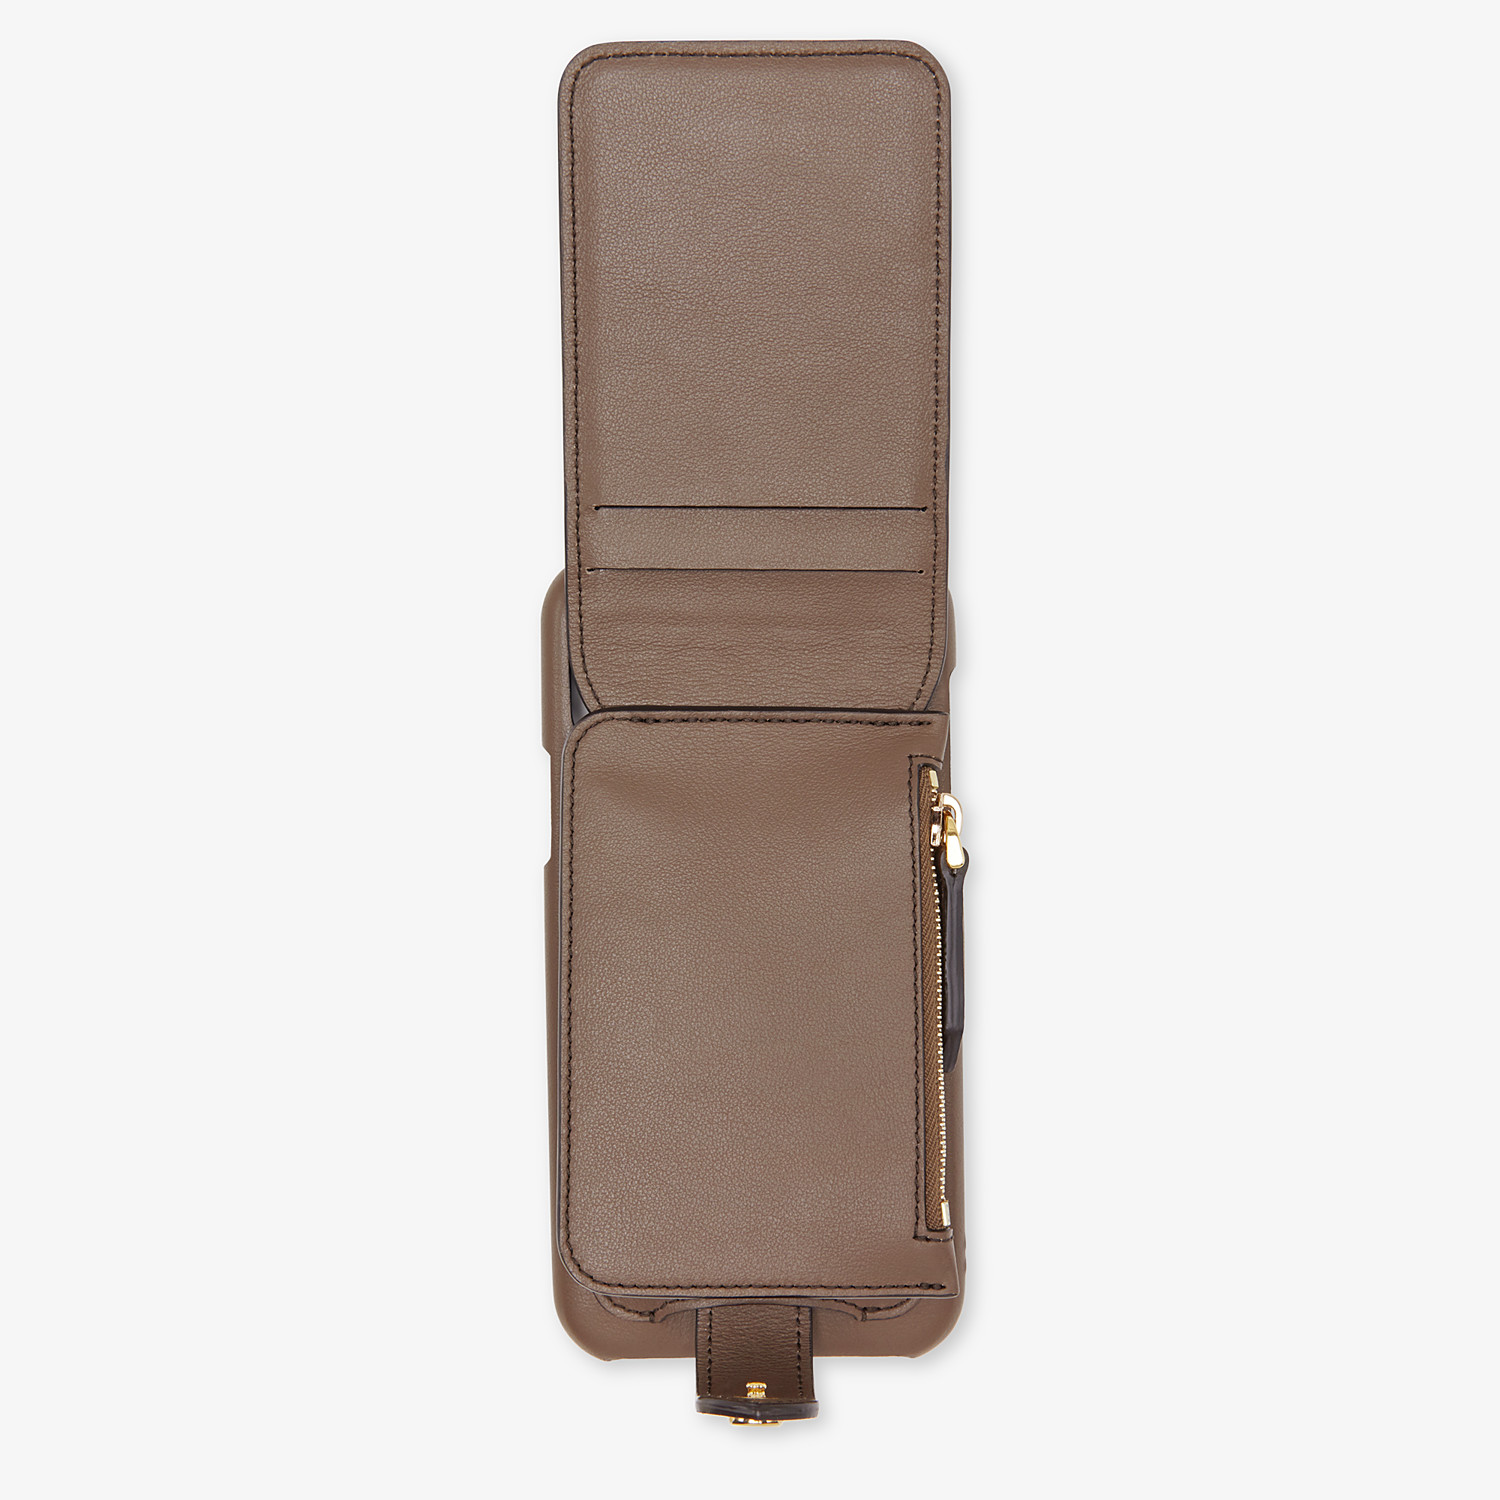 FENDI SMARTPHONE CASE - Brown leather cover - view 4 detail